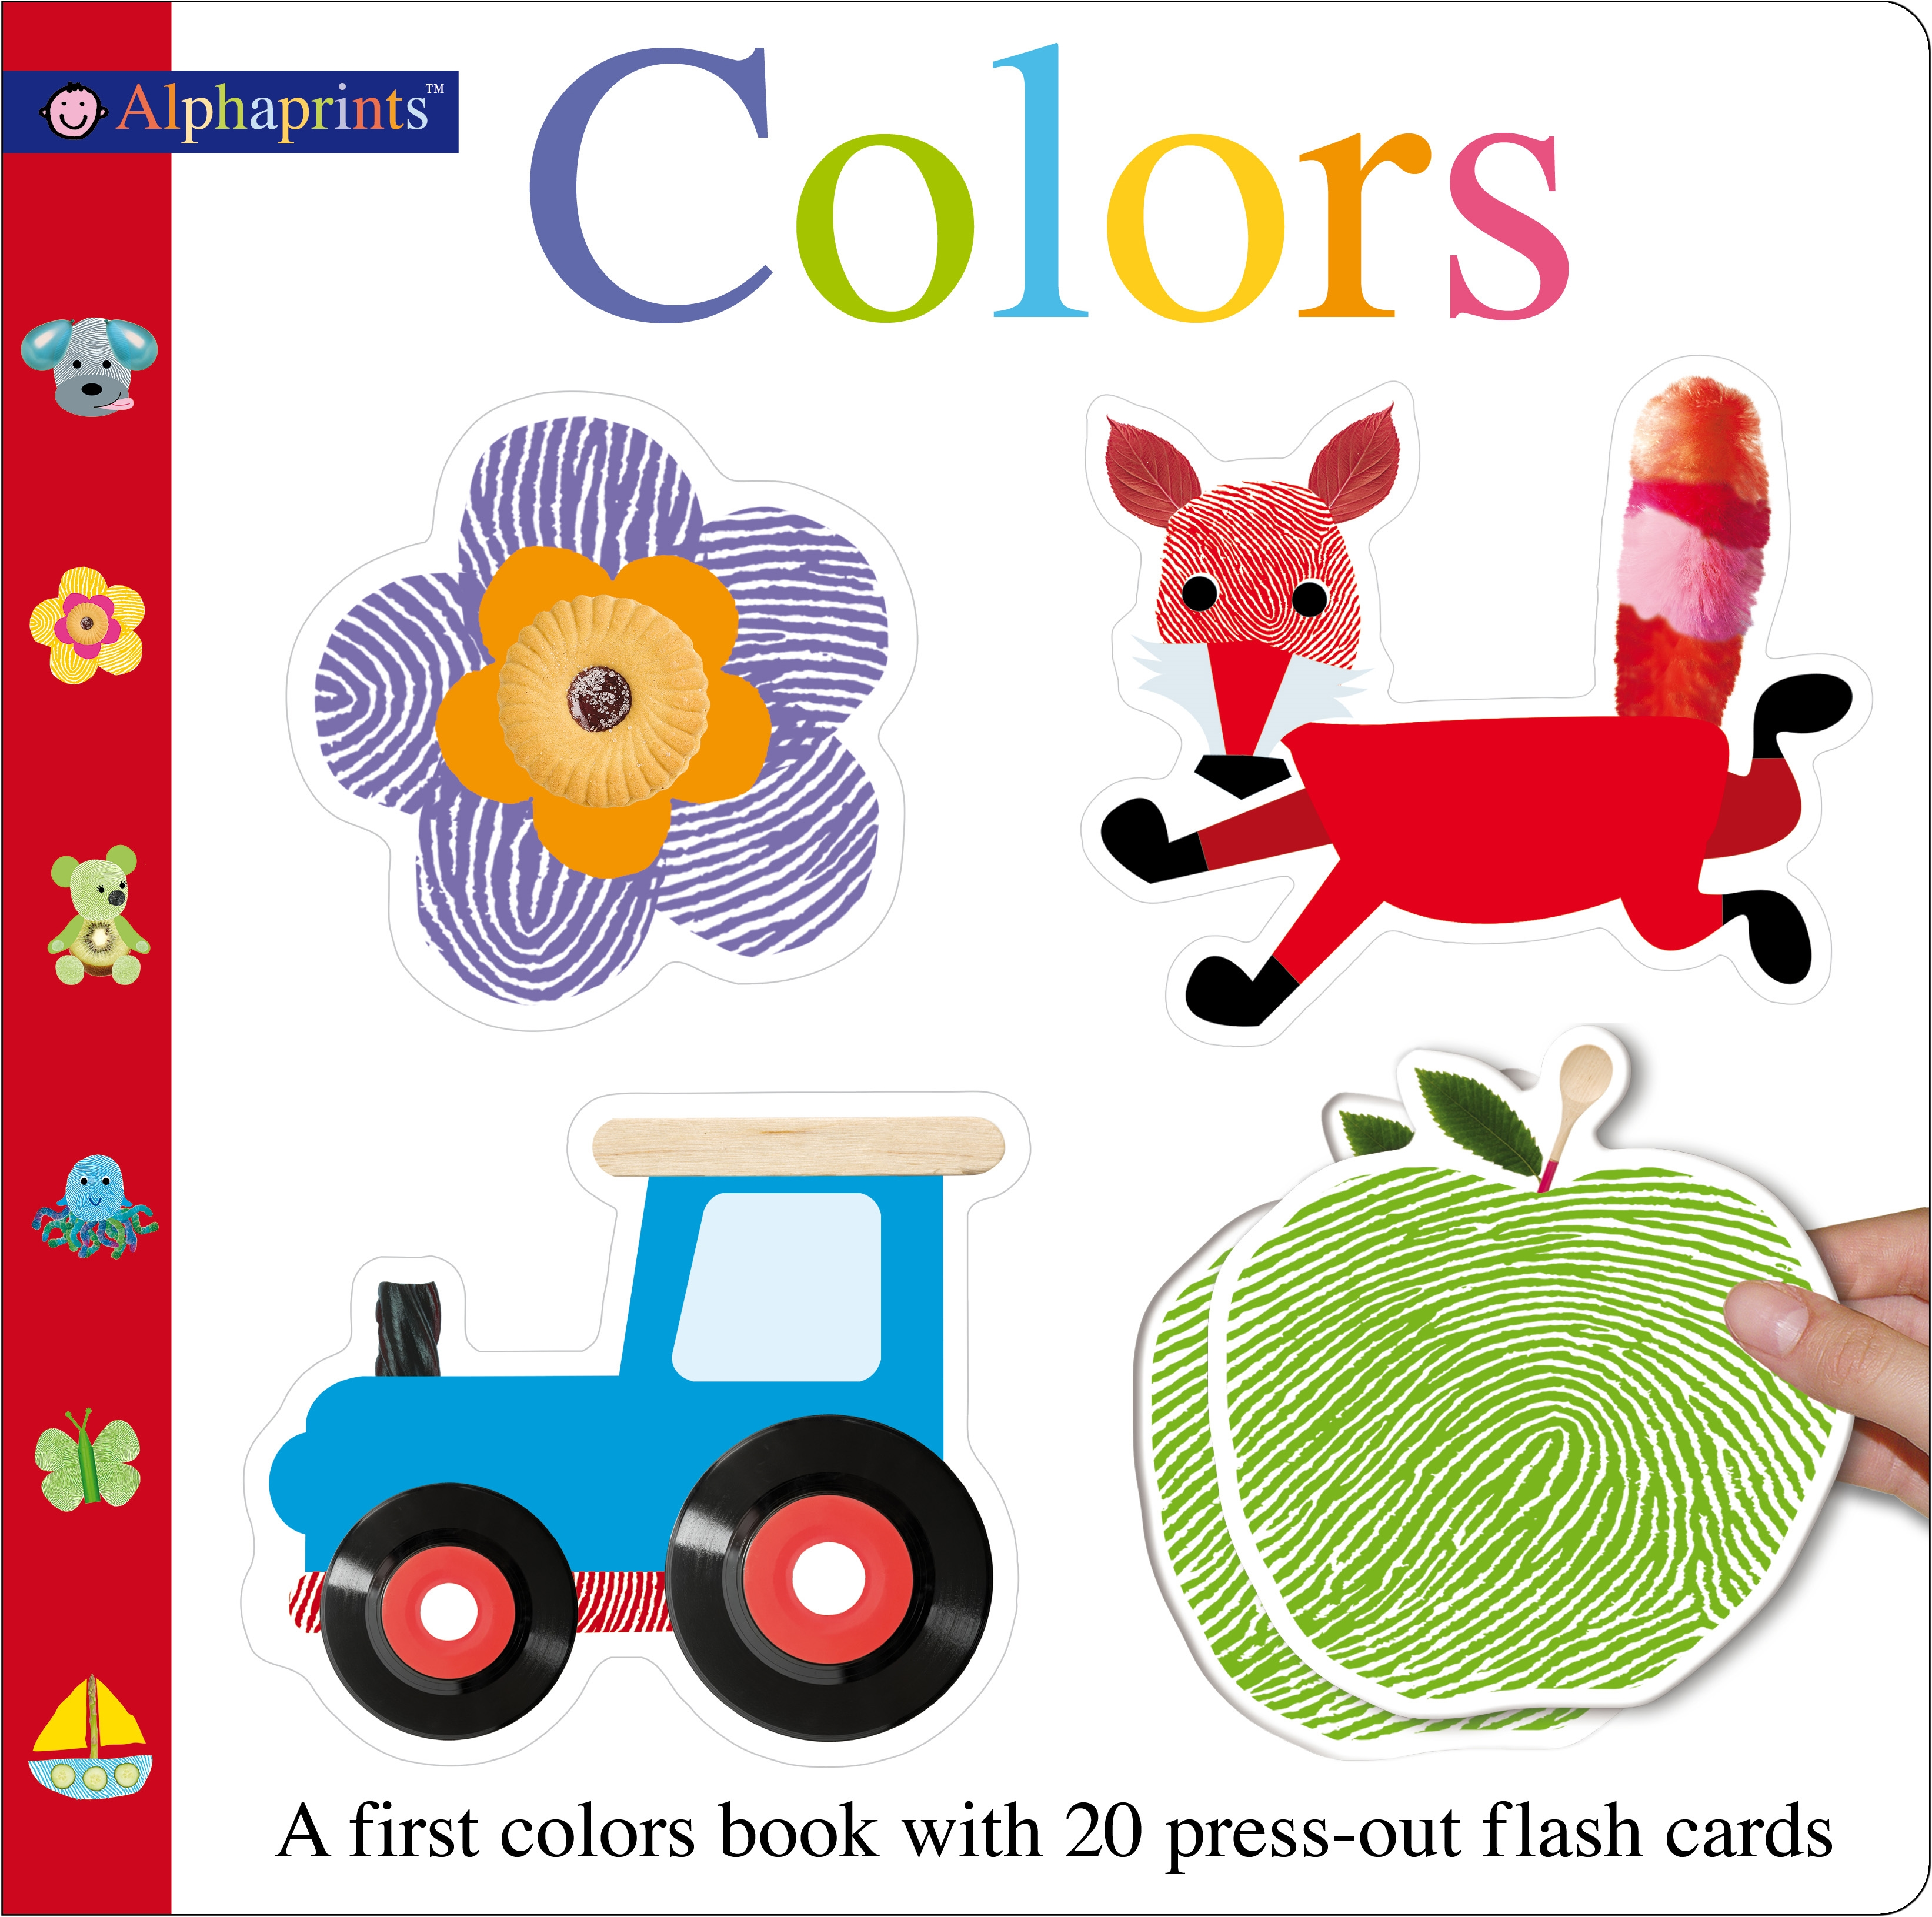 Alphaprints Colors Flash Card Book : A first colors book with 20 press-out flash cards